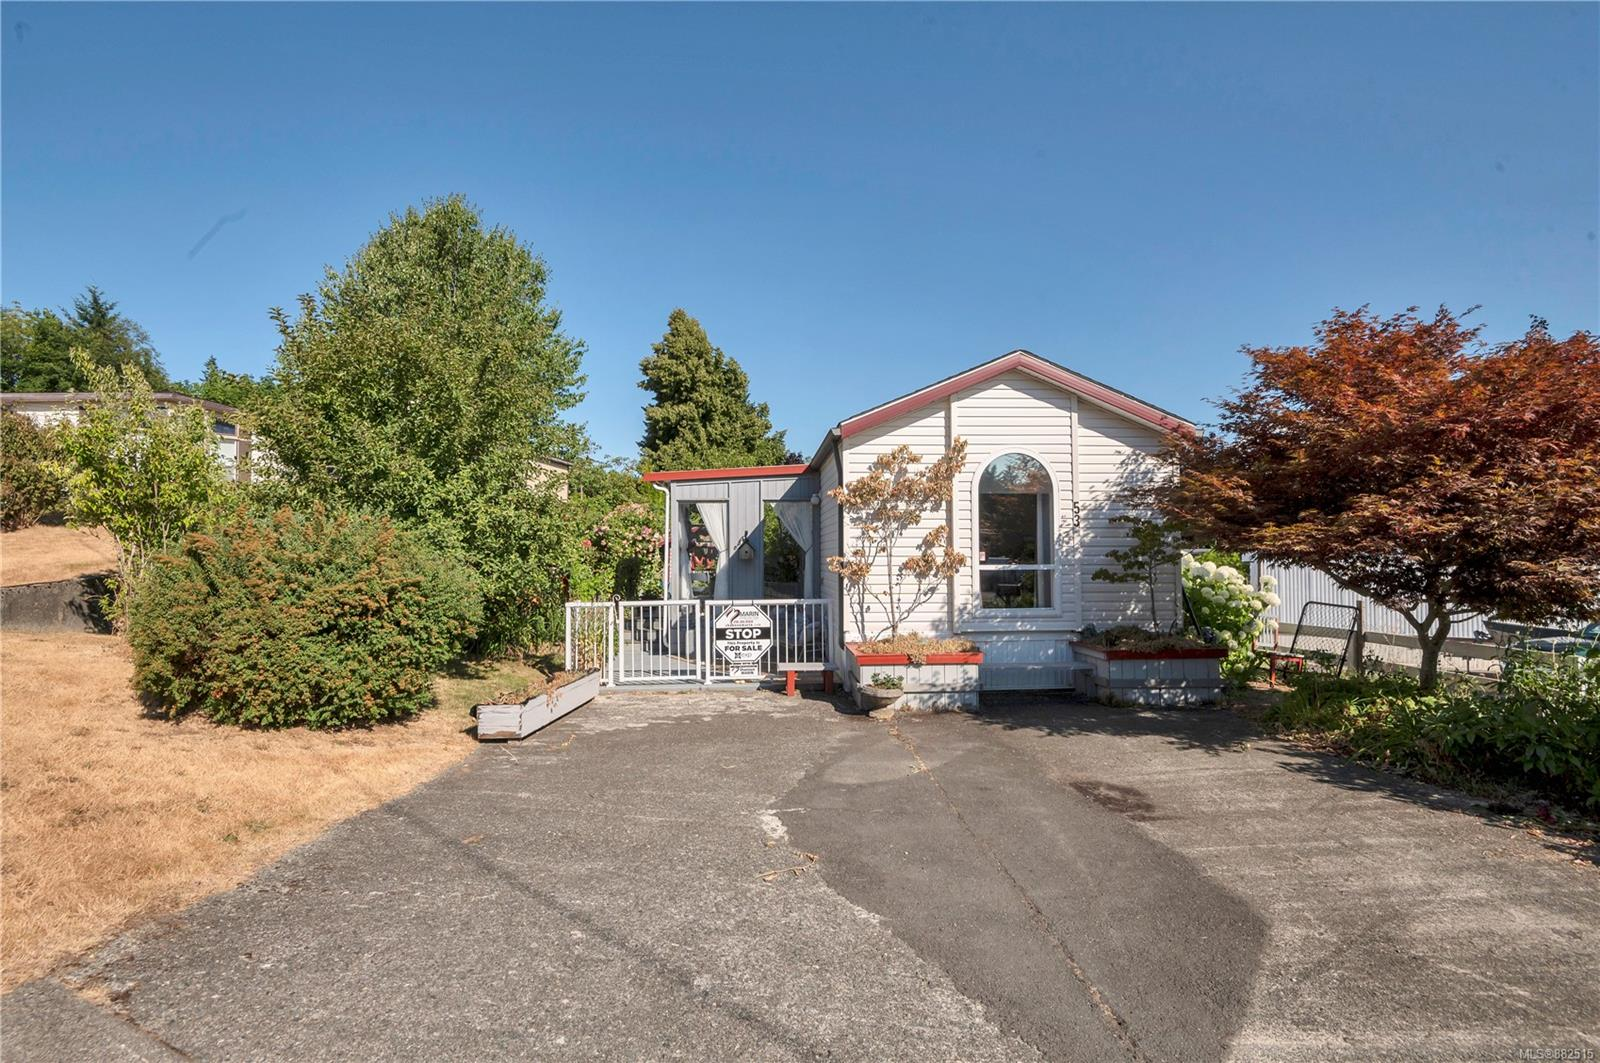 53 - 951 Homewood Road, Campbell River Central, Campbell River